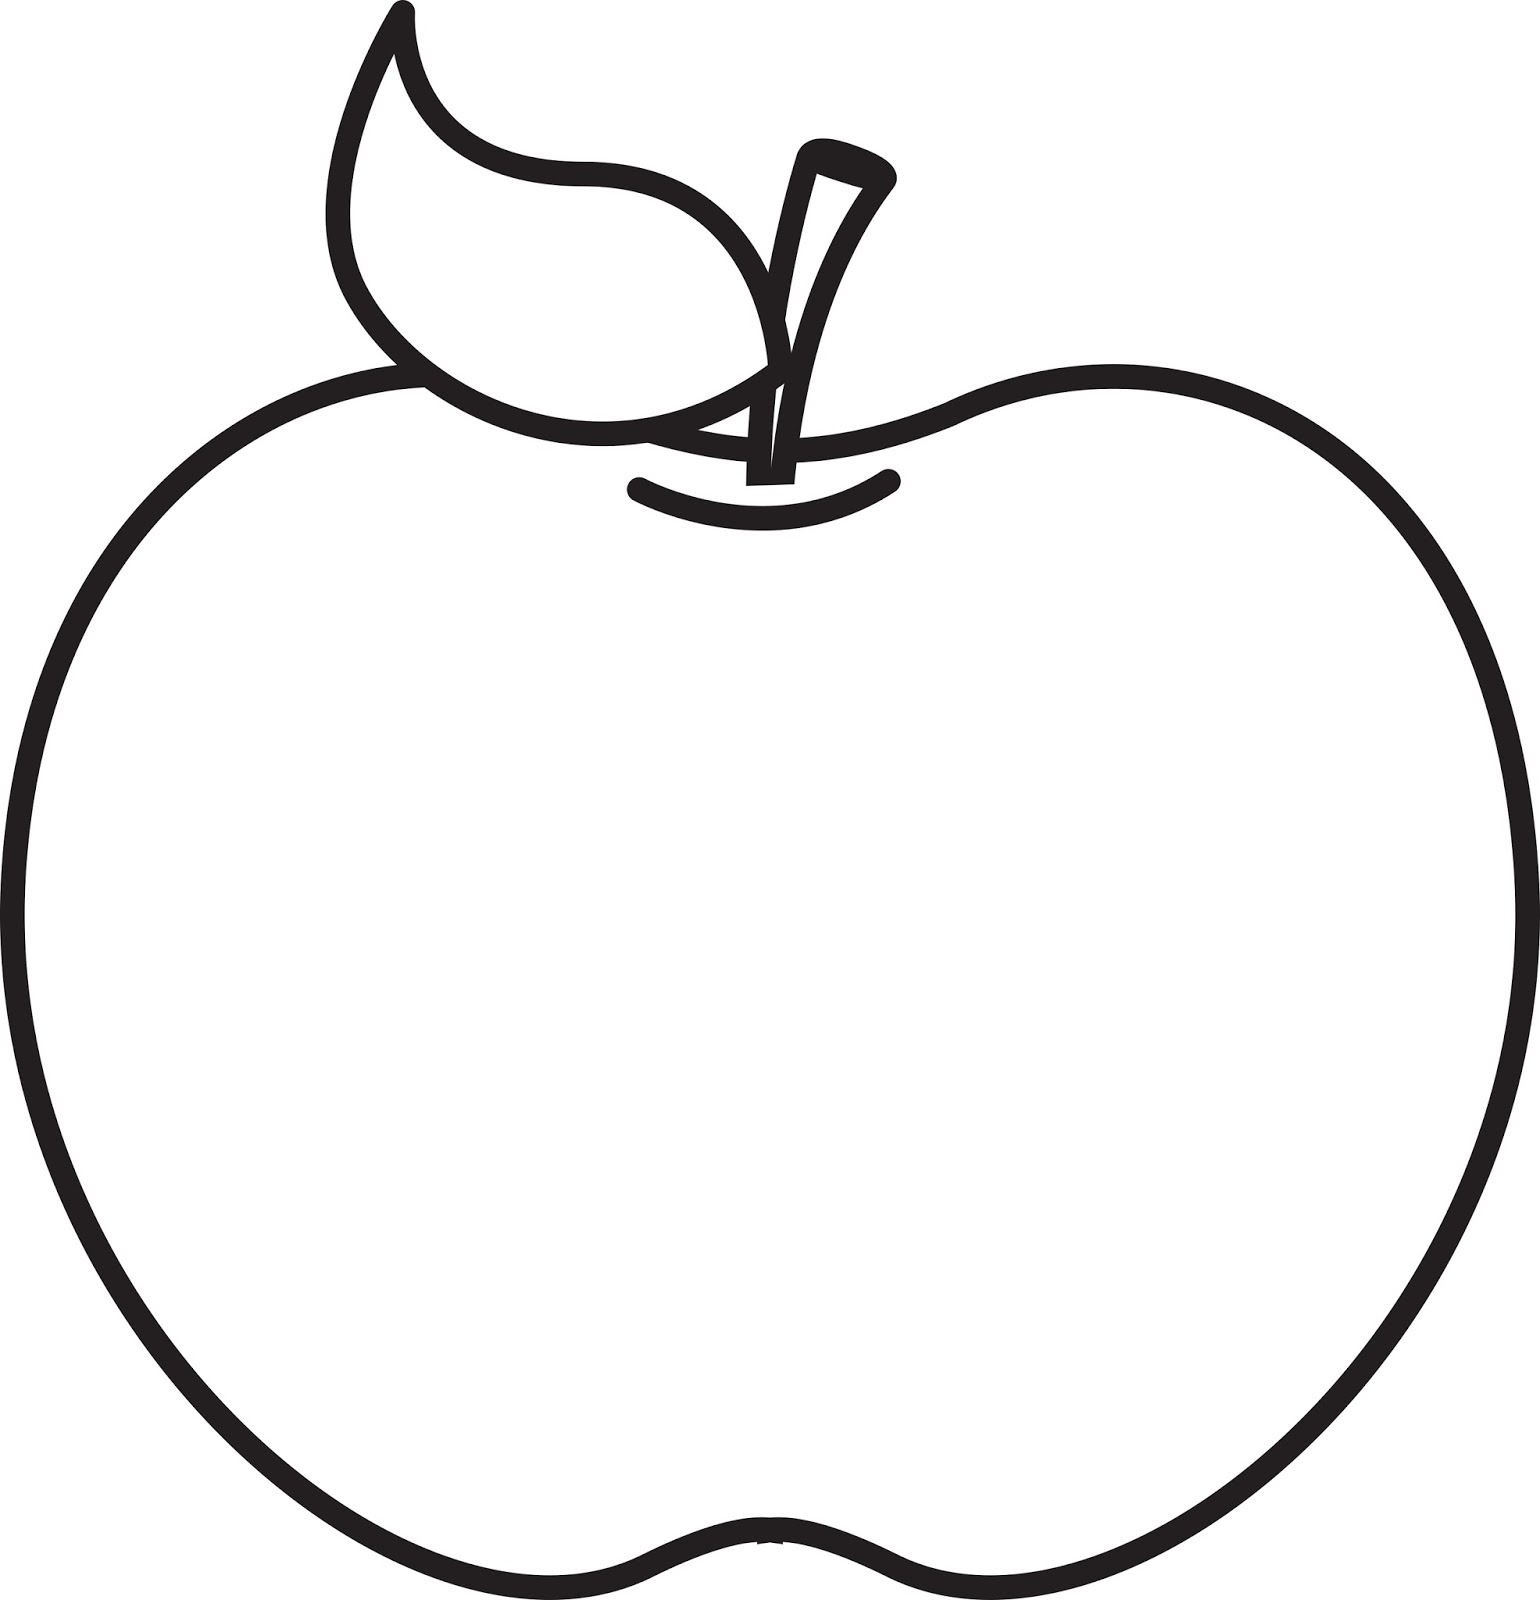 Apple Clipart Black And White-apple clipart black and white-6